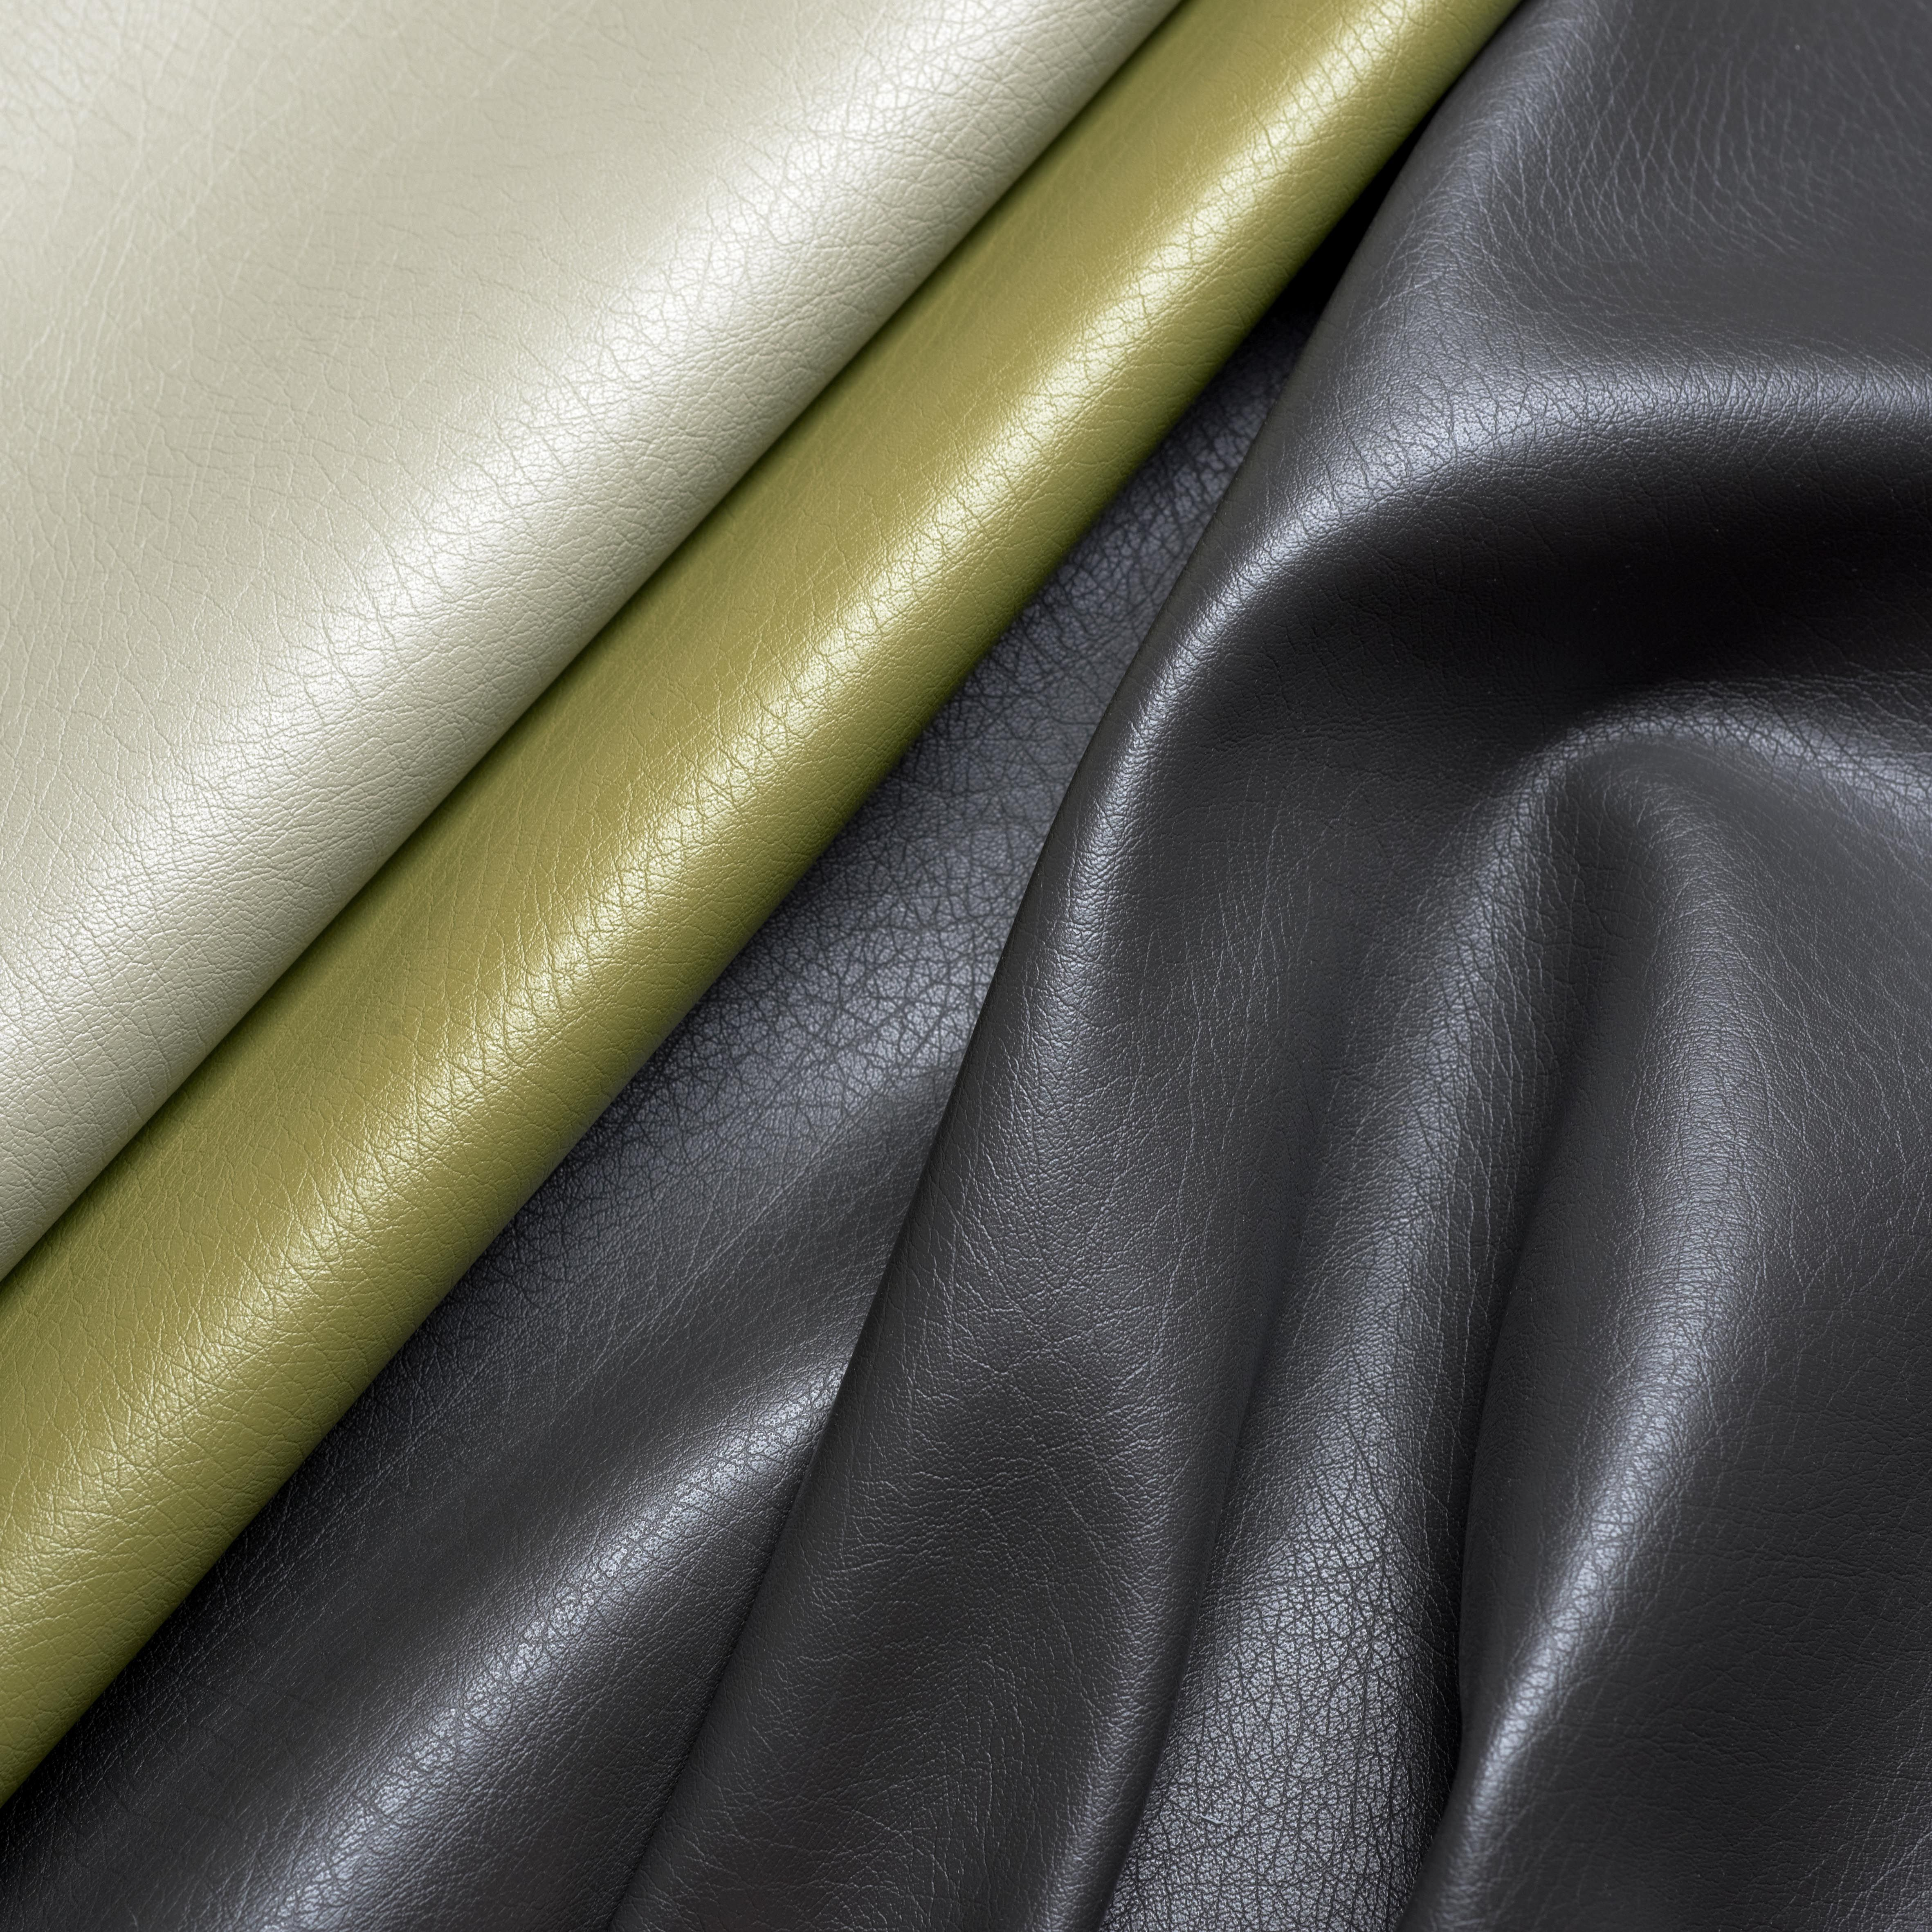 Soft Touch Faux Leather Upholstery Fabrics Leather Upholstery